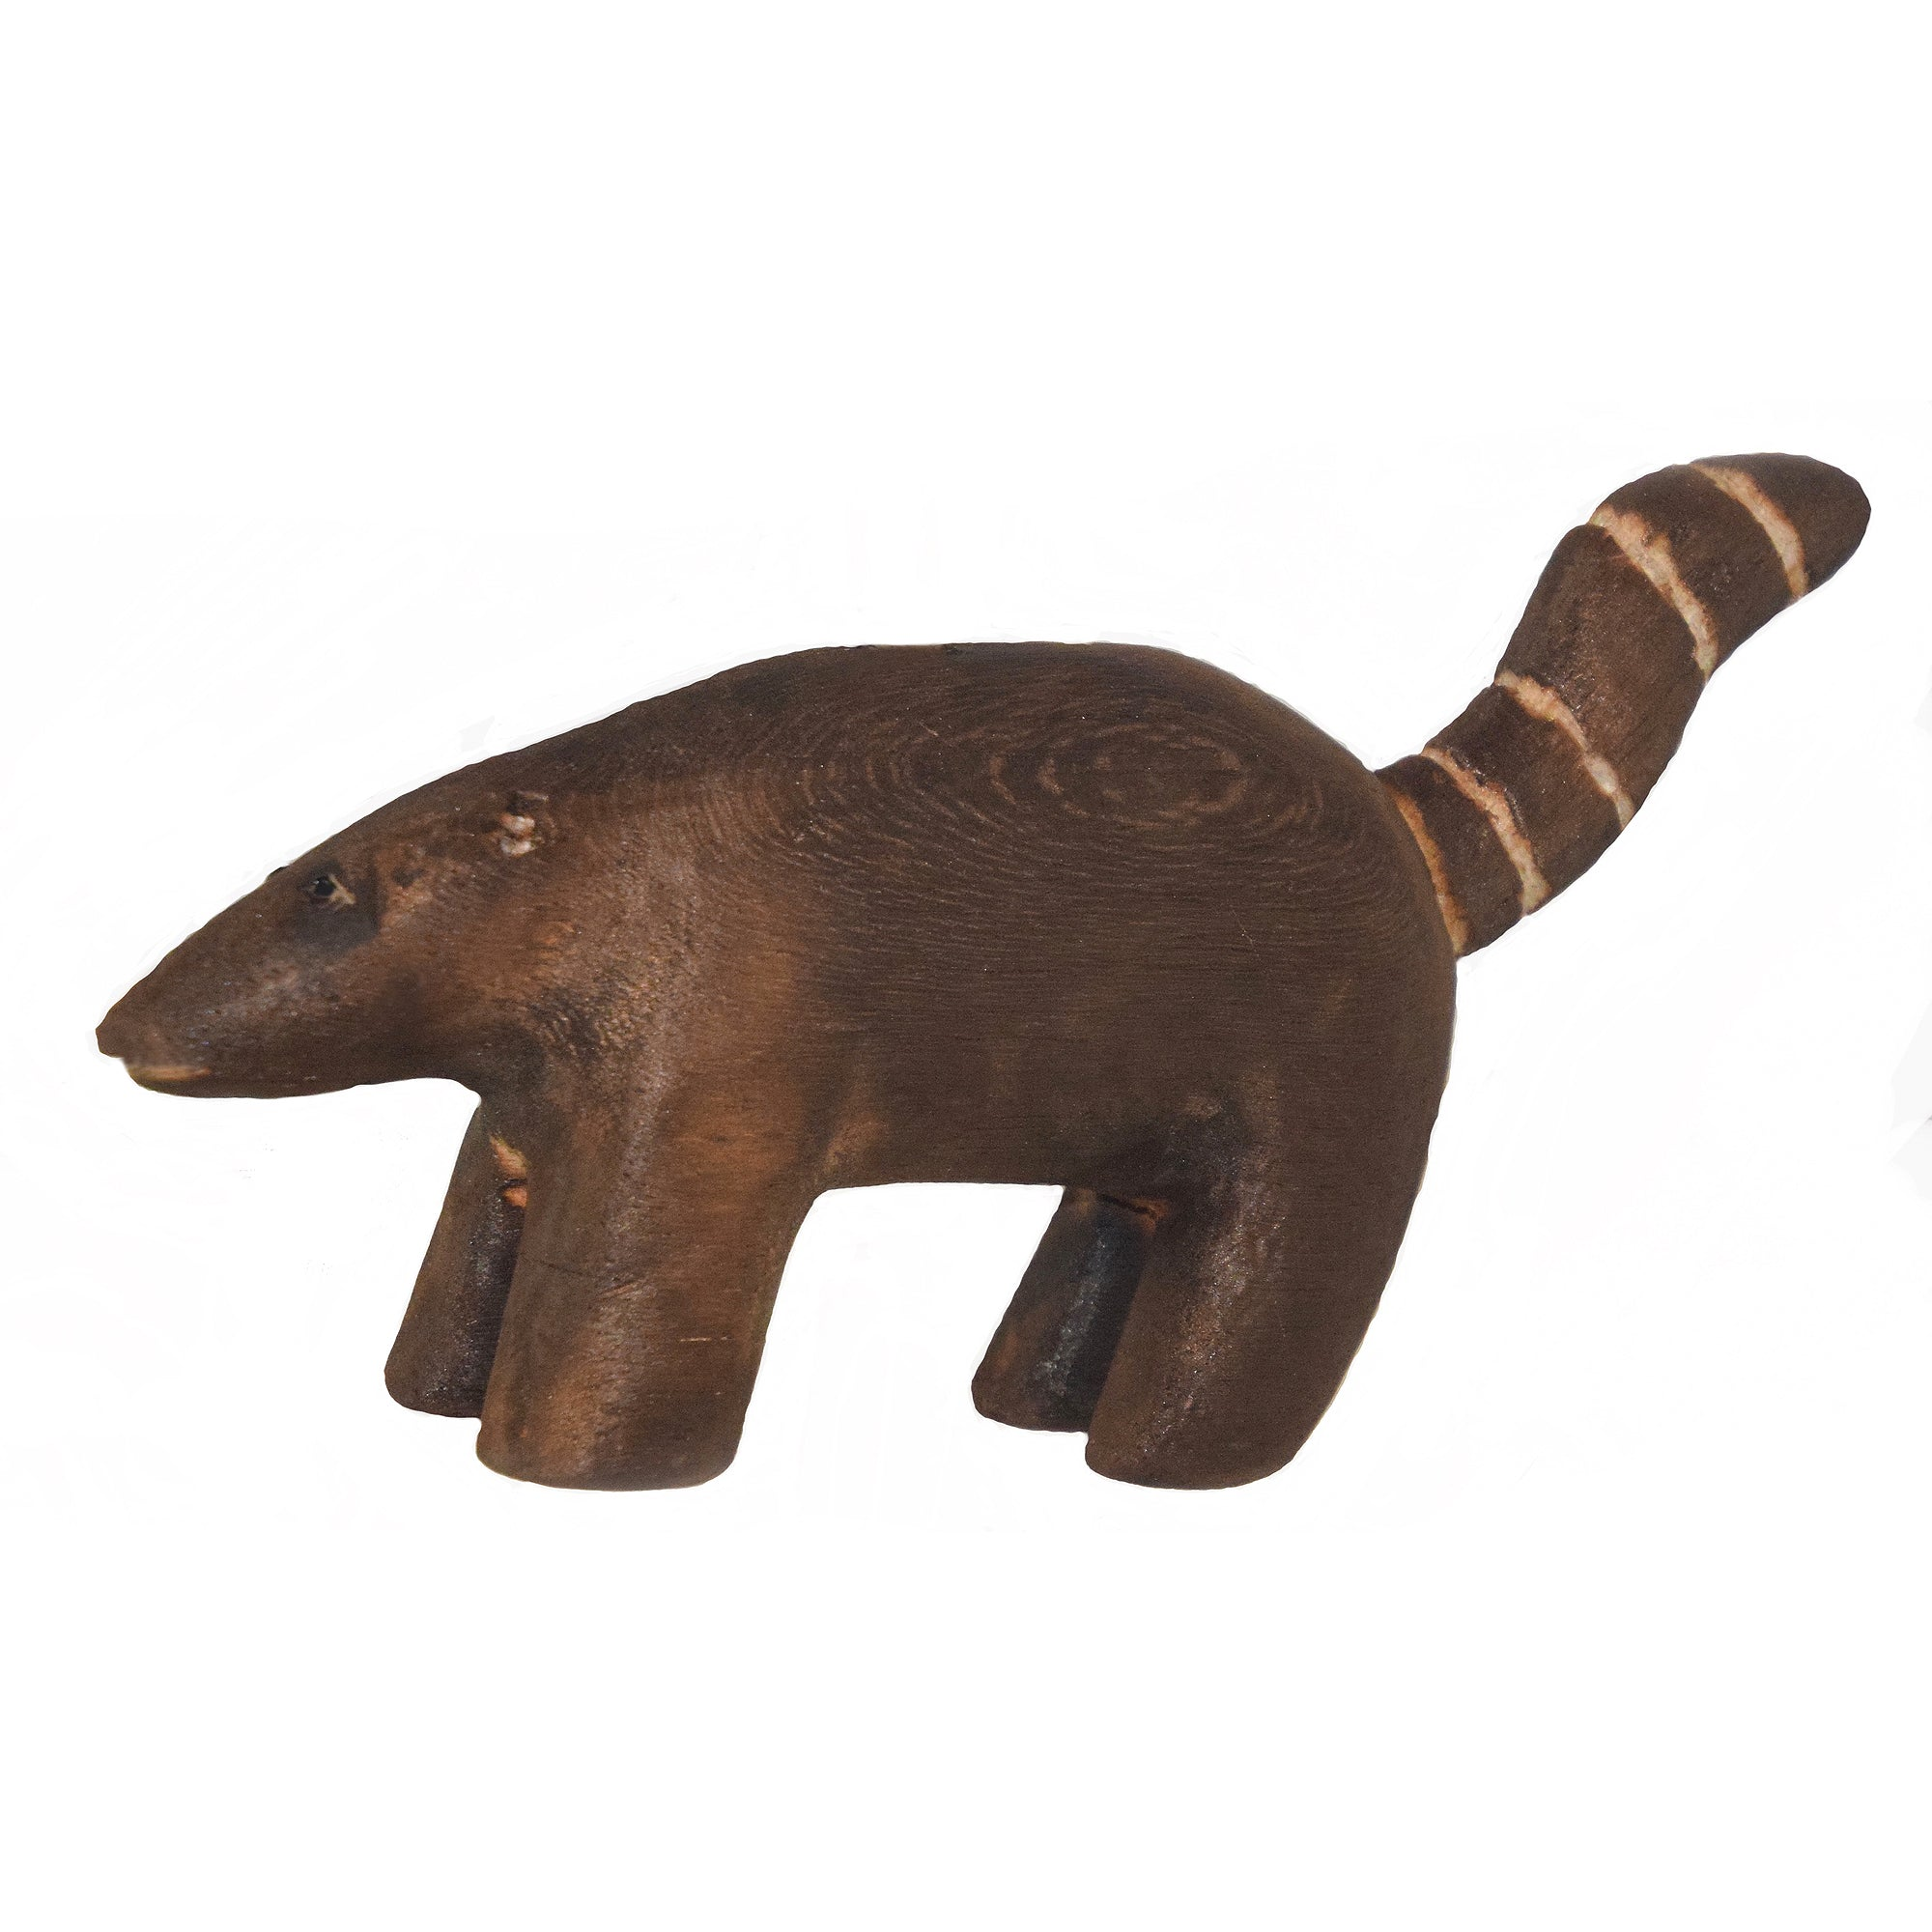 COATI BALSA WOOD FAIR -TRADE ORNAMENT - CARVED BY PERUVIAN AMAZON ARTISAN